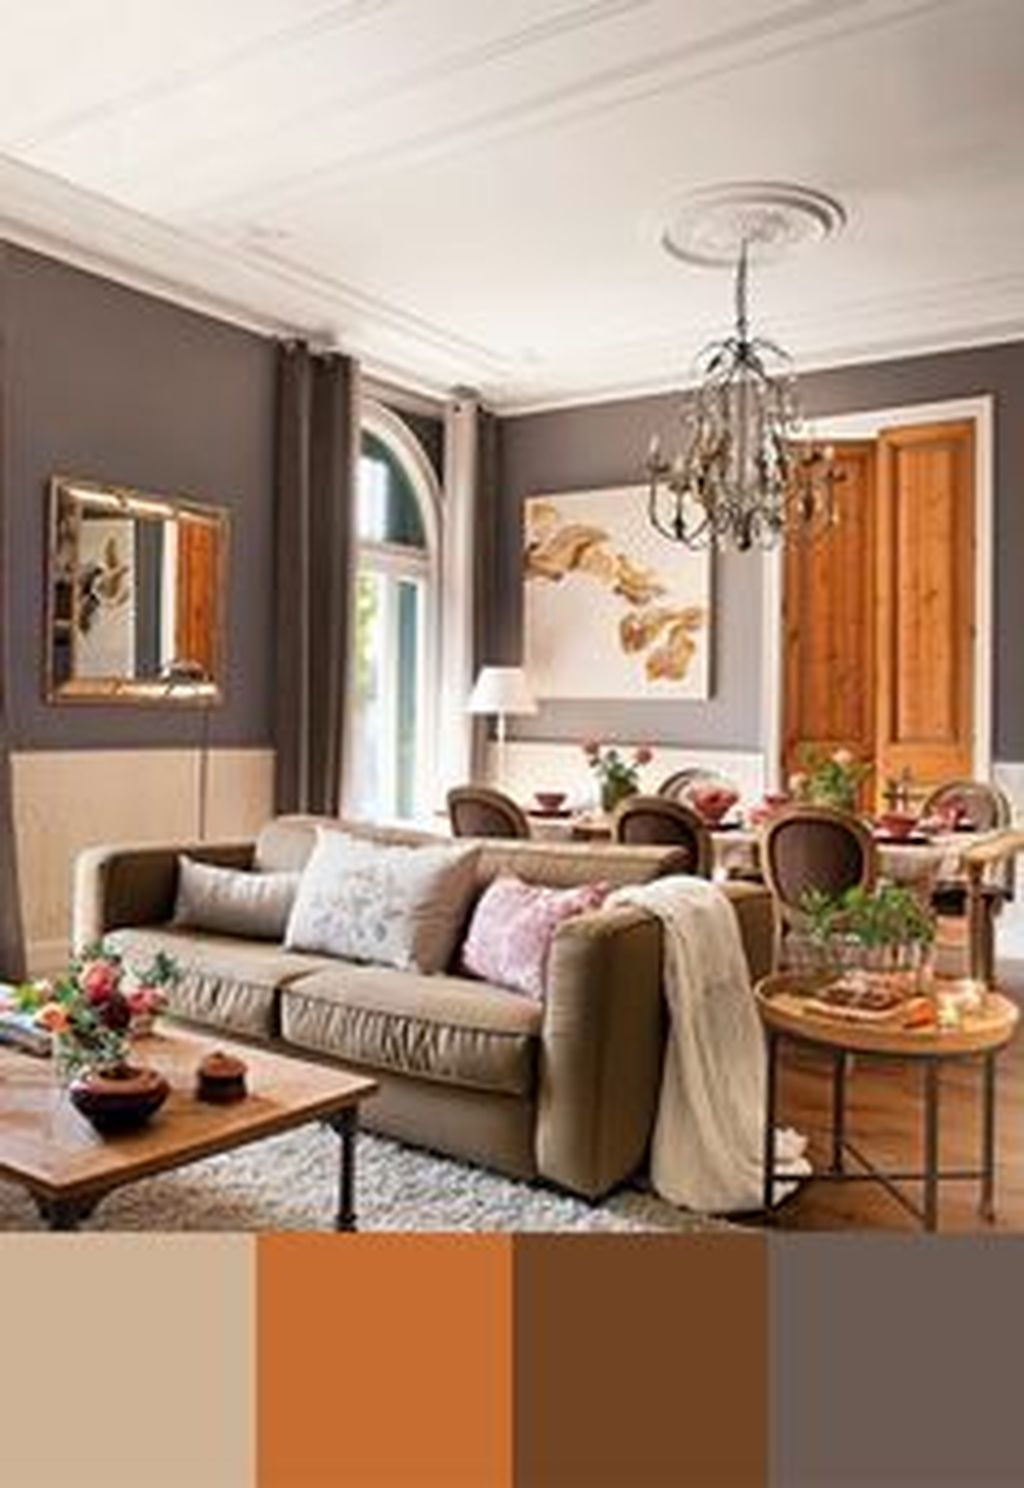 A Color Plan Can Establish The Tone For Your Living Room Loca